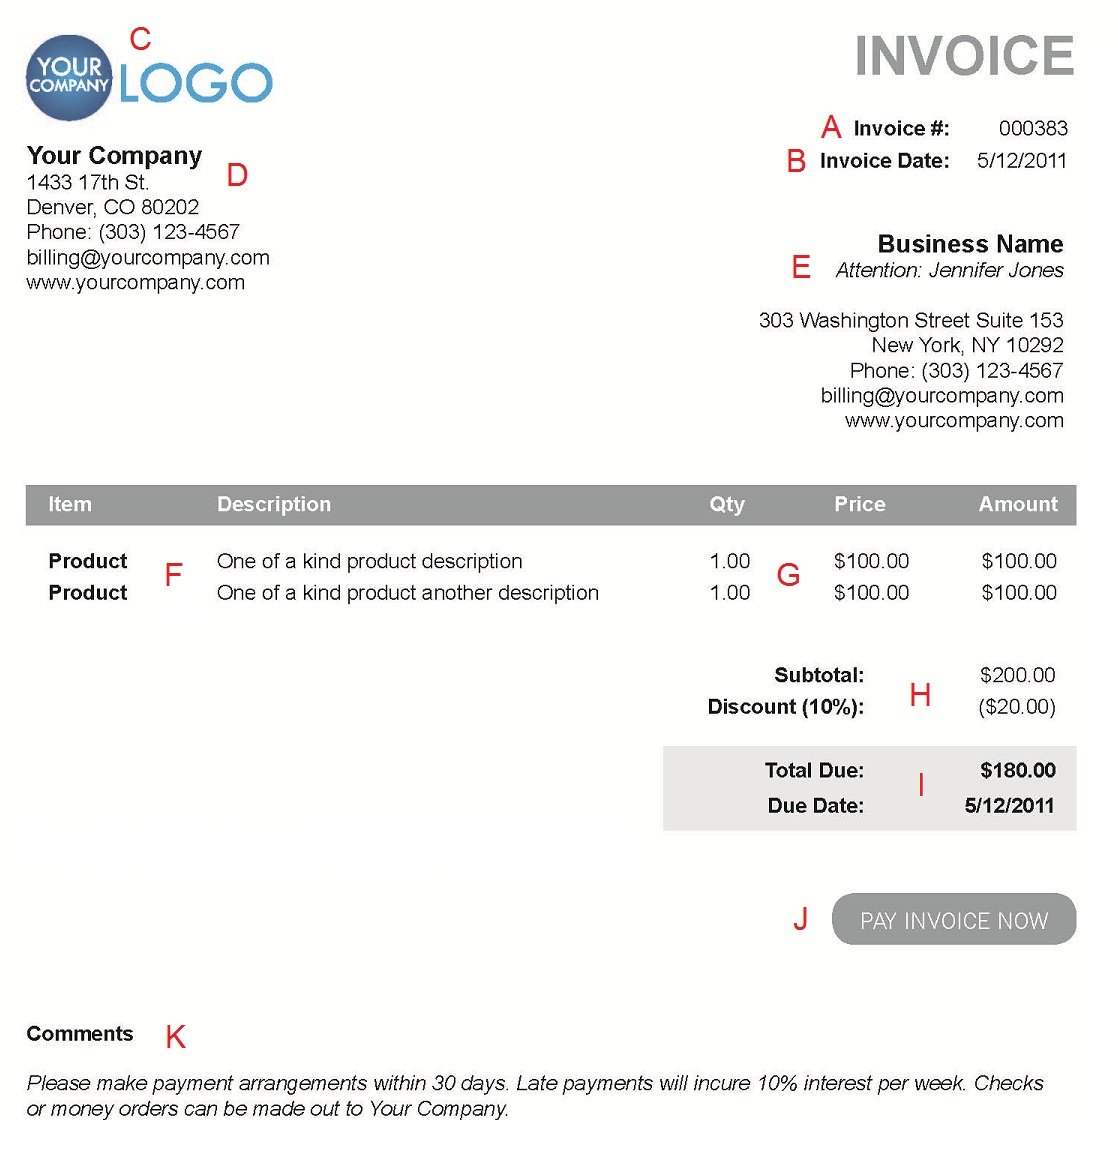 Darkfaderus  Outstanding The  Different Sections Of An Electronic Payment Invoice With Lovable A  With Breathtaking Pos Invoice Software Also Business Invoice Example In Addition Simple Tax Invoice Template And Tax Invoice Statement As Well As Sample Of Proforma Invoice Additionally Trade Invoice Template From Paysimplecom With Darkfaderus  Lovable The  Different Sections Of An Electronic Payment Invoice With Breathtaking A  And Outstanding Pos Invoice Software Also Business Invoice Example In Addition Simple Tax Invoice Template From Paysimplecom